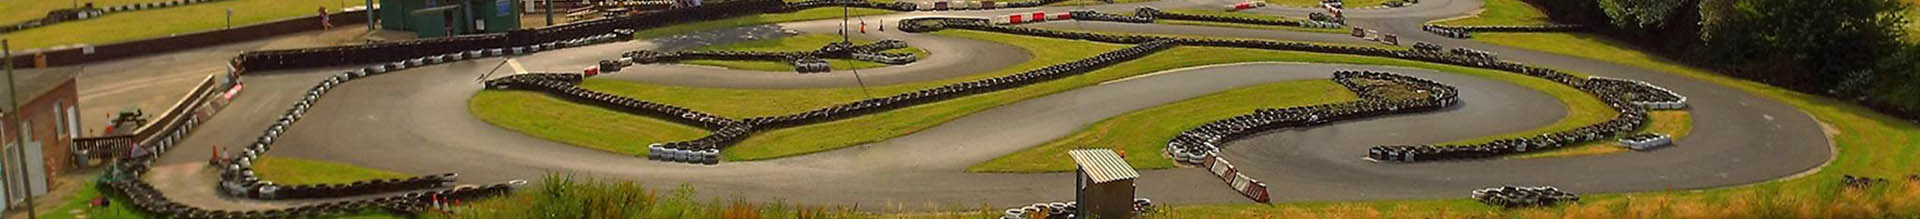 Anglia Training Services Track